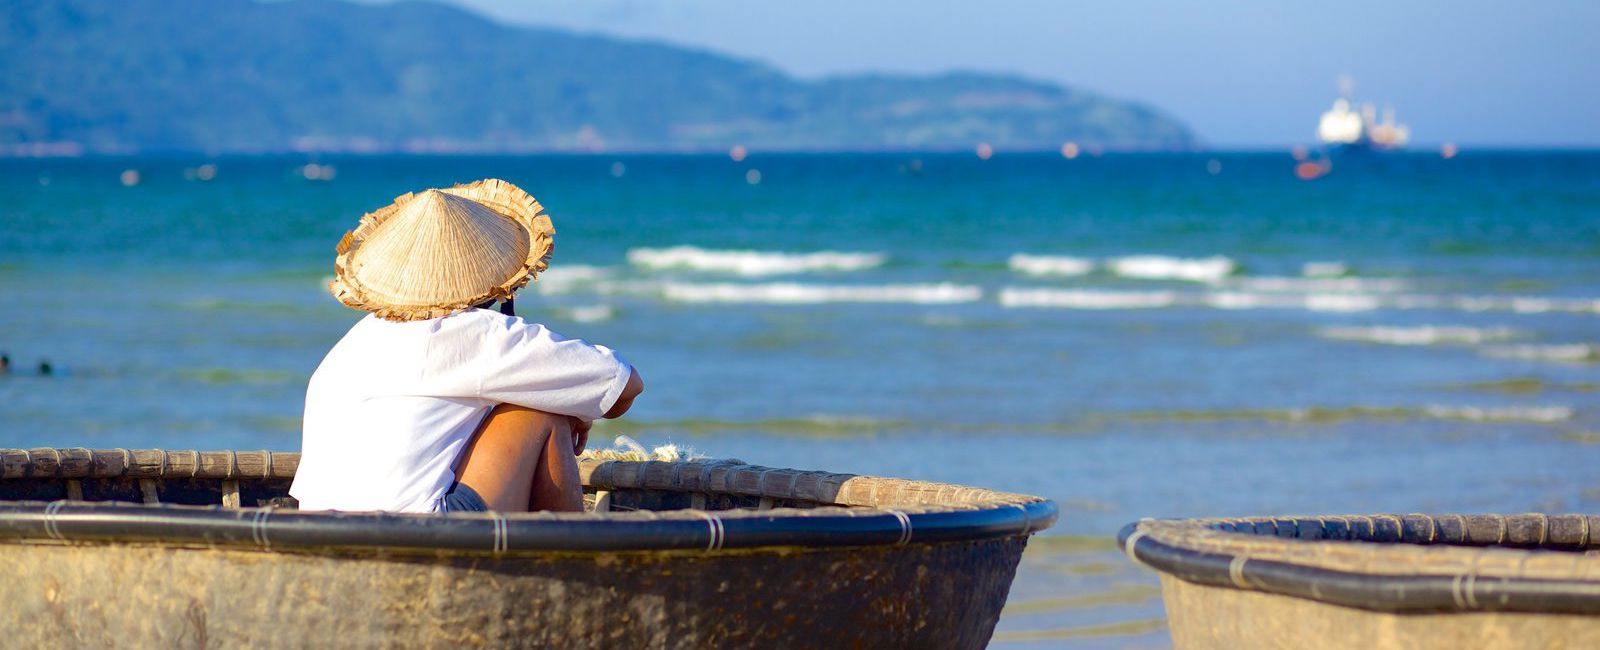 Attractions Danang And Hoi An